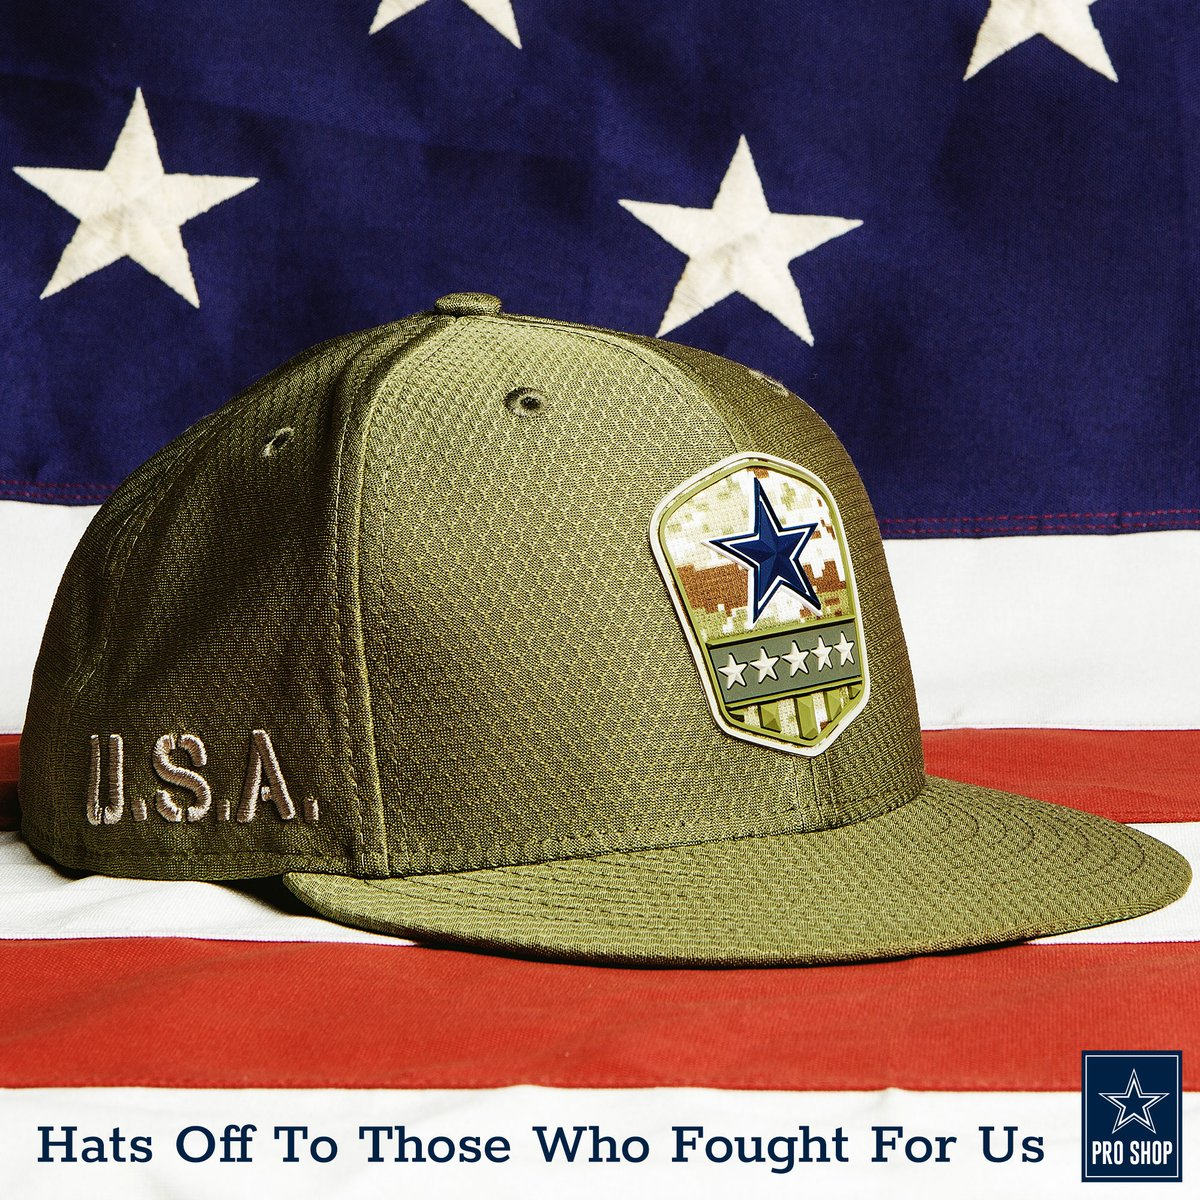 """On behalf of #CowboysNation, we say """"thank you"""" & take our hats off this Memorial Day for all of those who have made the ultimate sacrifice. https://t.co/4vw9yld9Gc"""